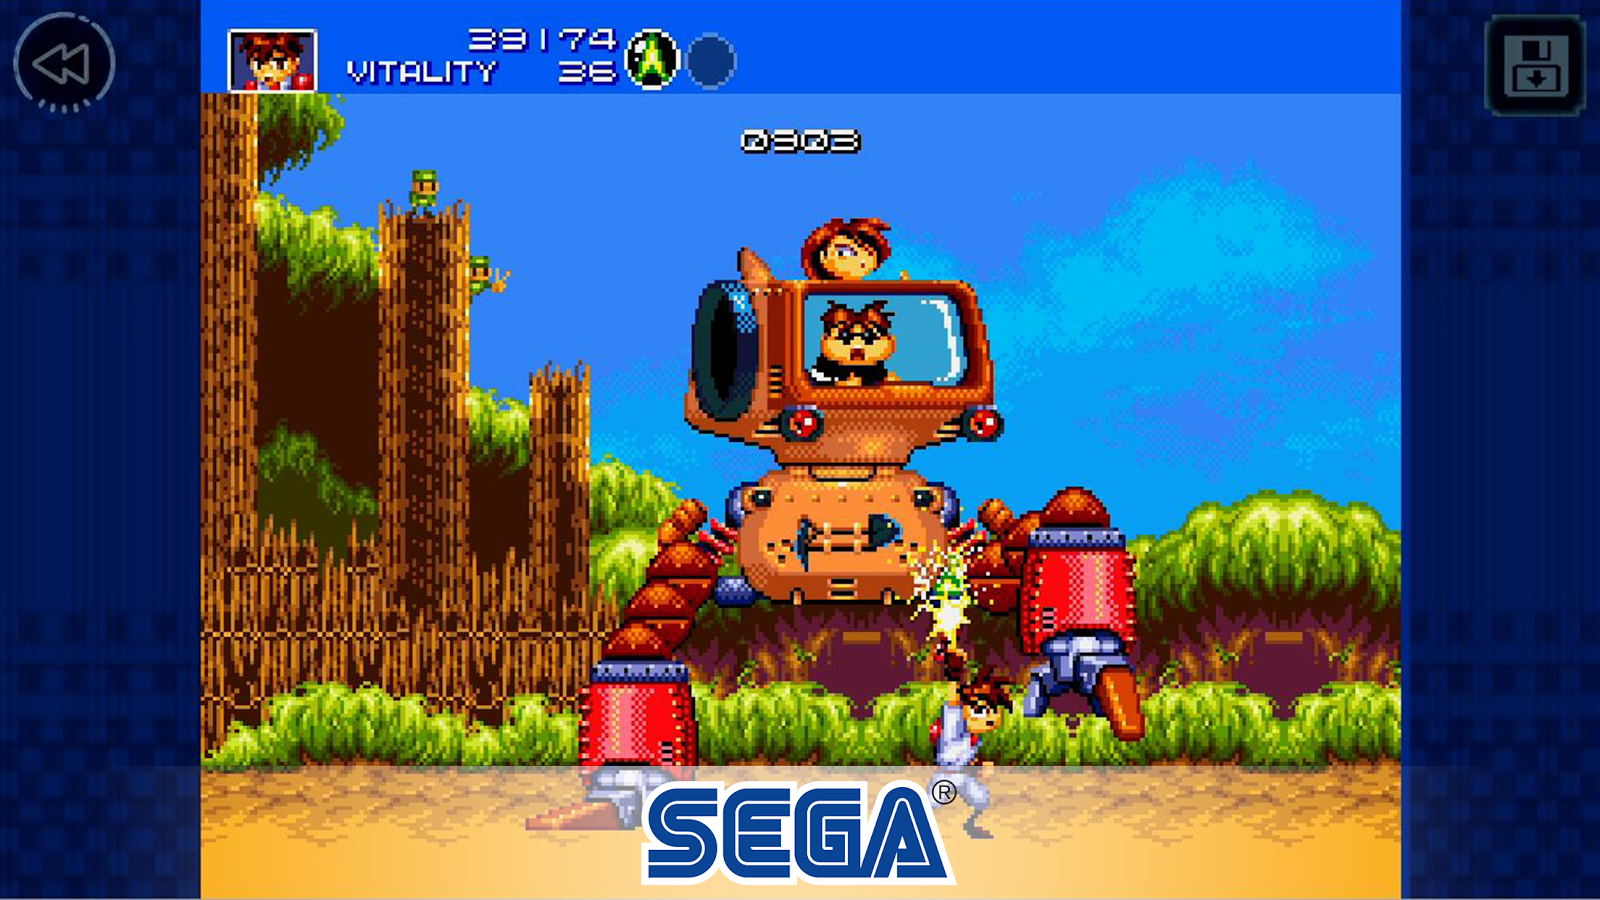 gunstar heroes is the newest entry in the sega forever classic games